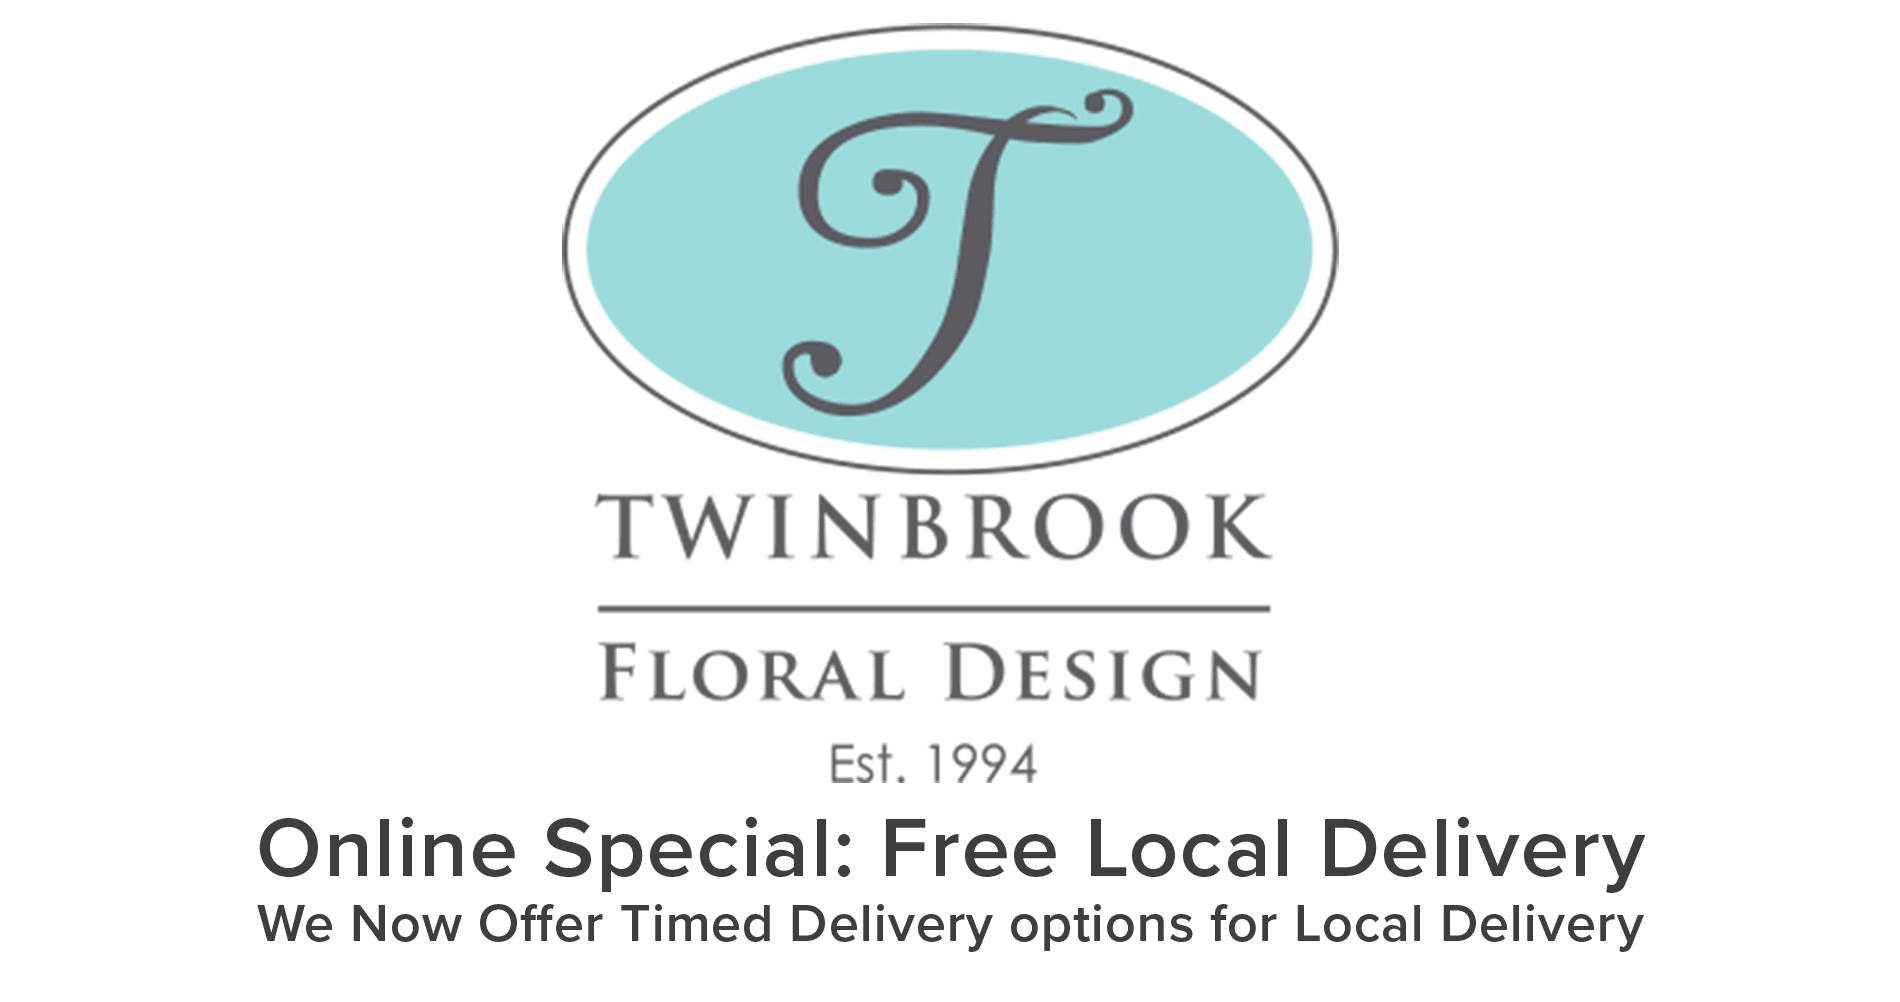 Chantilly Florist | Flower Delivery by Twinbrook Floral Design